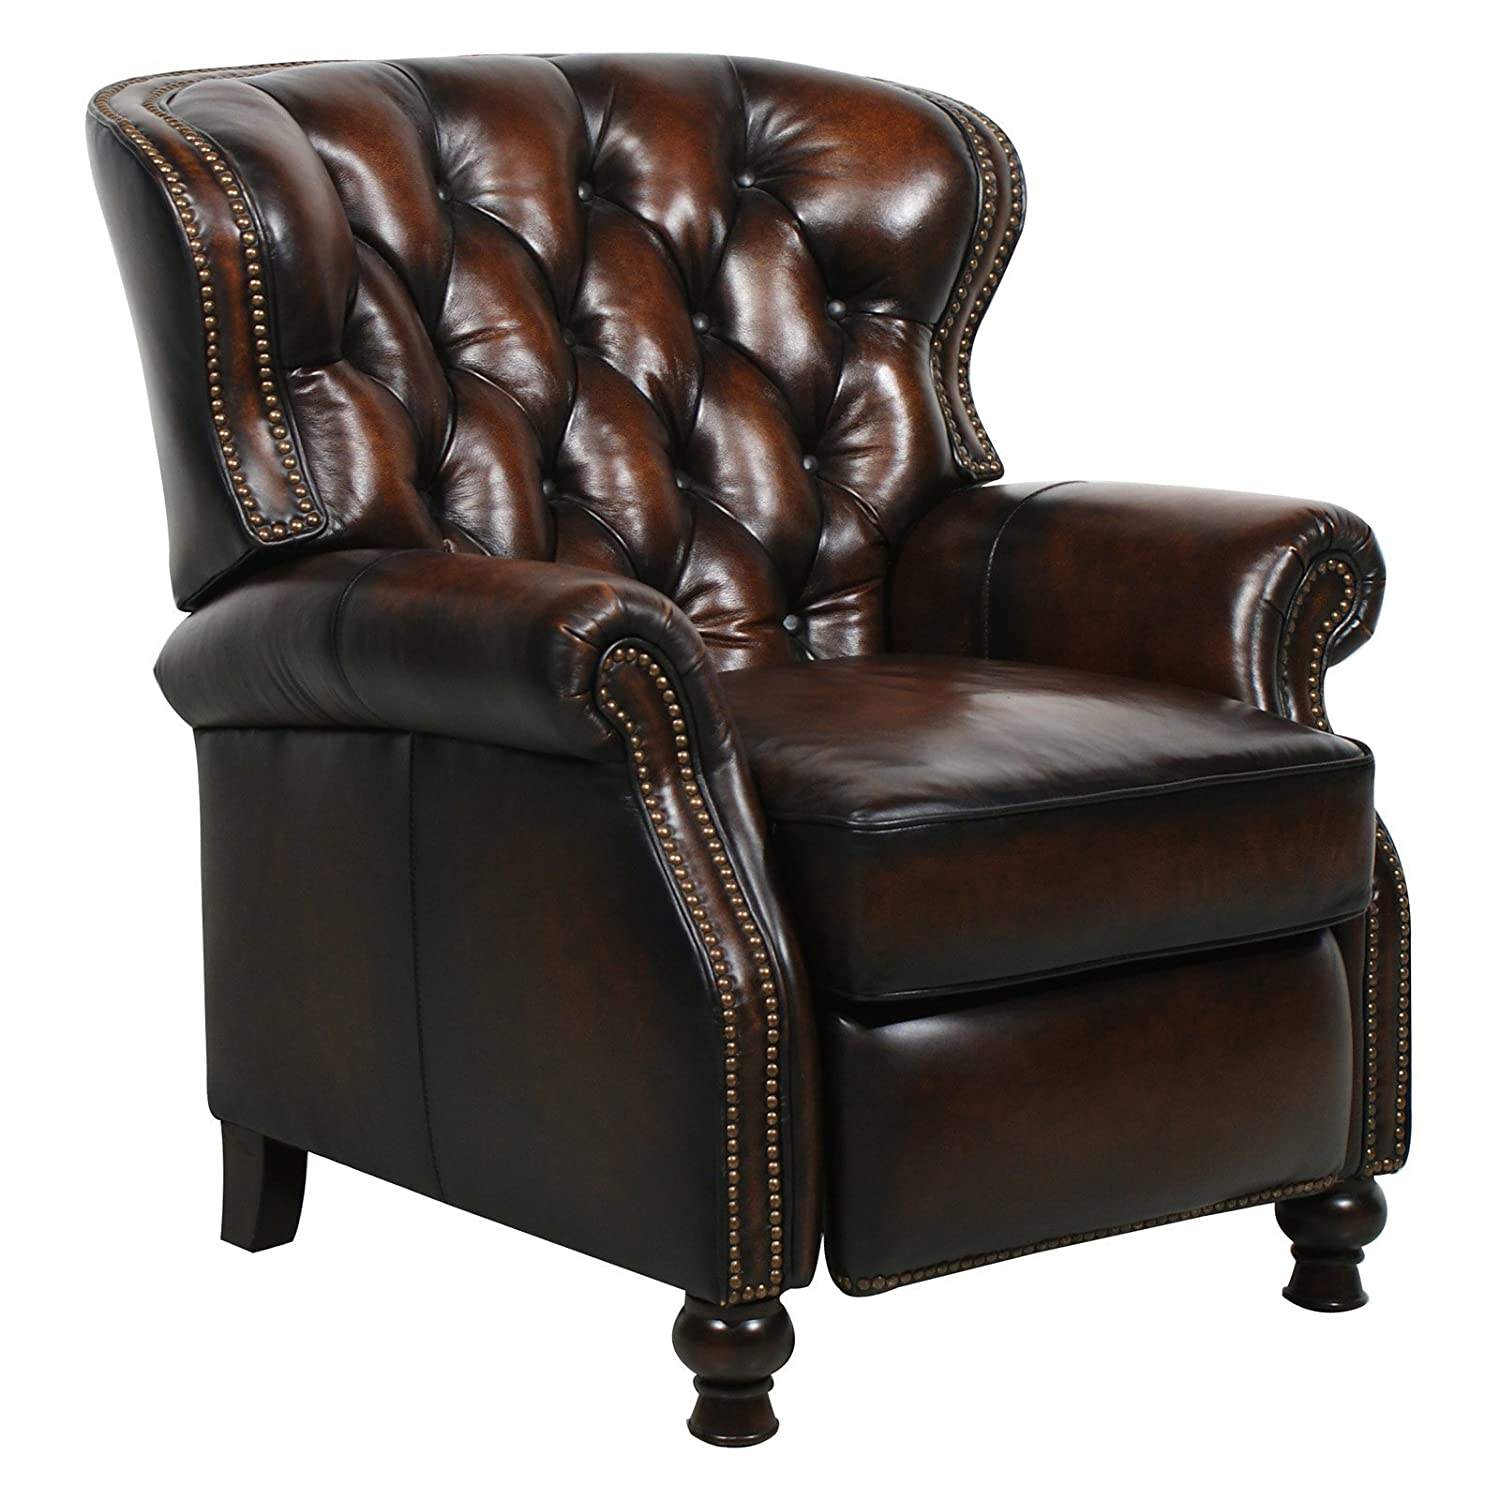 Amazon.com Presidential ll Top Grain Leather Chair Manual Recliner by Barcalounger Kitchen u0026 Dining  sc 1 st  Amazon.com & Amazon.com: Presidential ll Top Grain Leather Chair Manual ... islam-shia.org